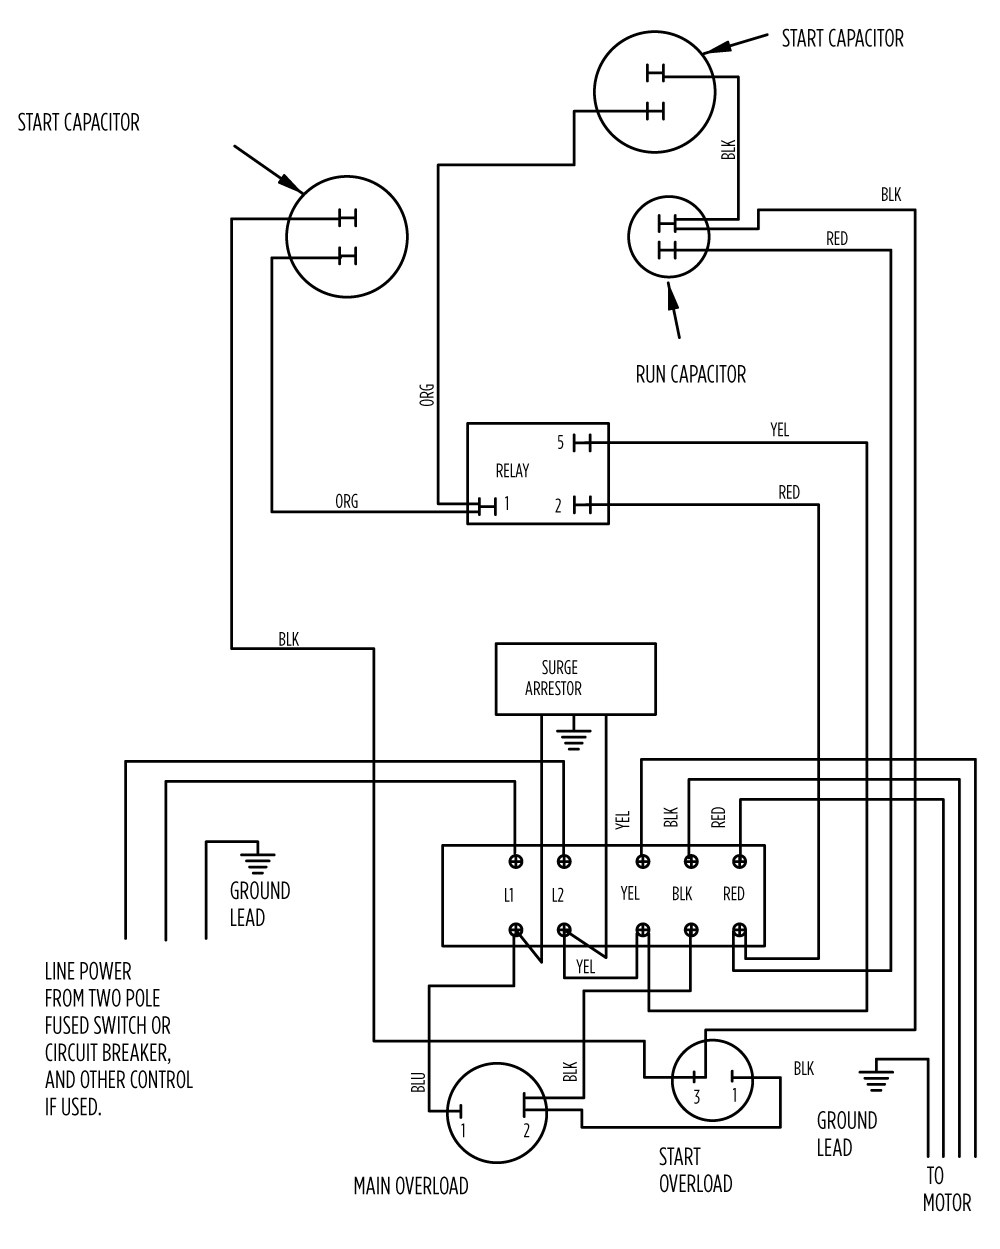 franklin motor wiring diagram wiring diagrams instruct Synchronous Motor Wiring aim manual page 56 single phase motors and controls motor single phase motor starter wiring franklin motor wiring diagram